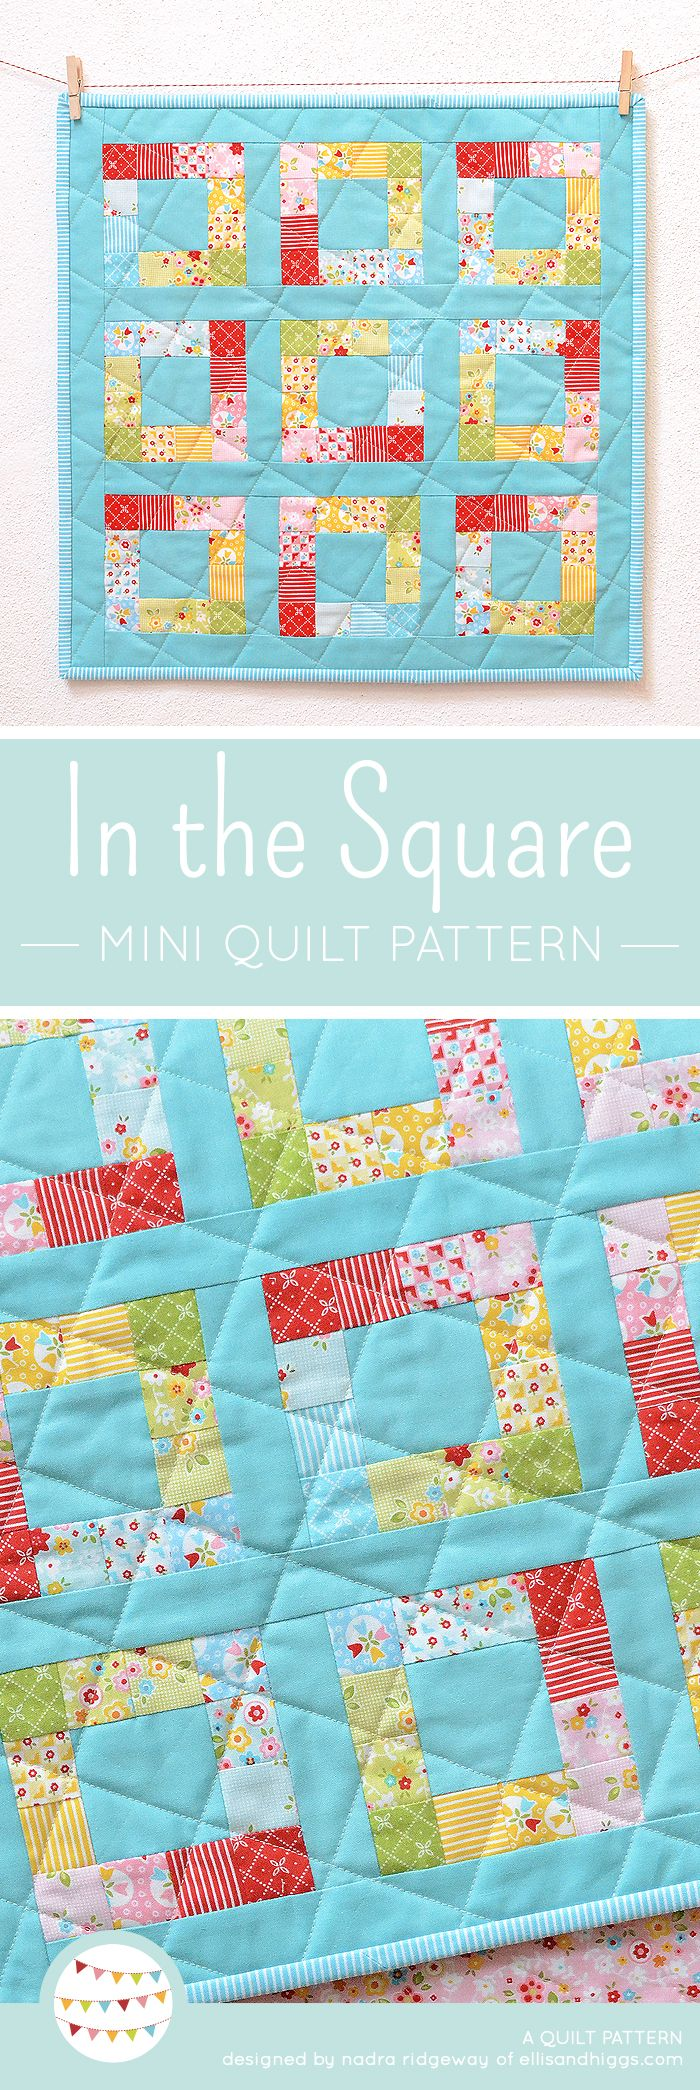 PDF Quilt Pattern - In The Square MINI | Patchworkmuster ...